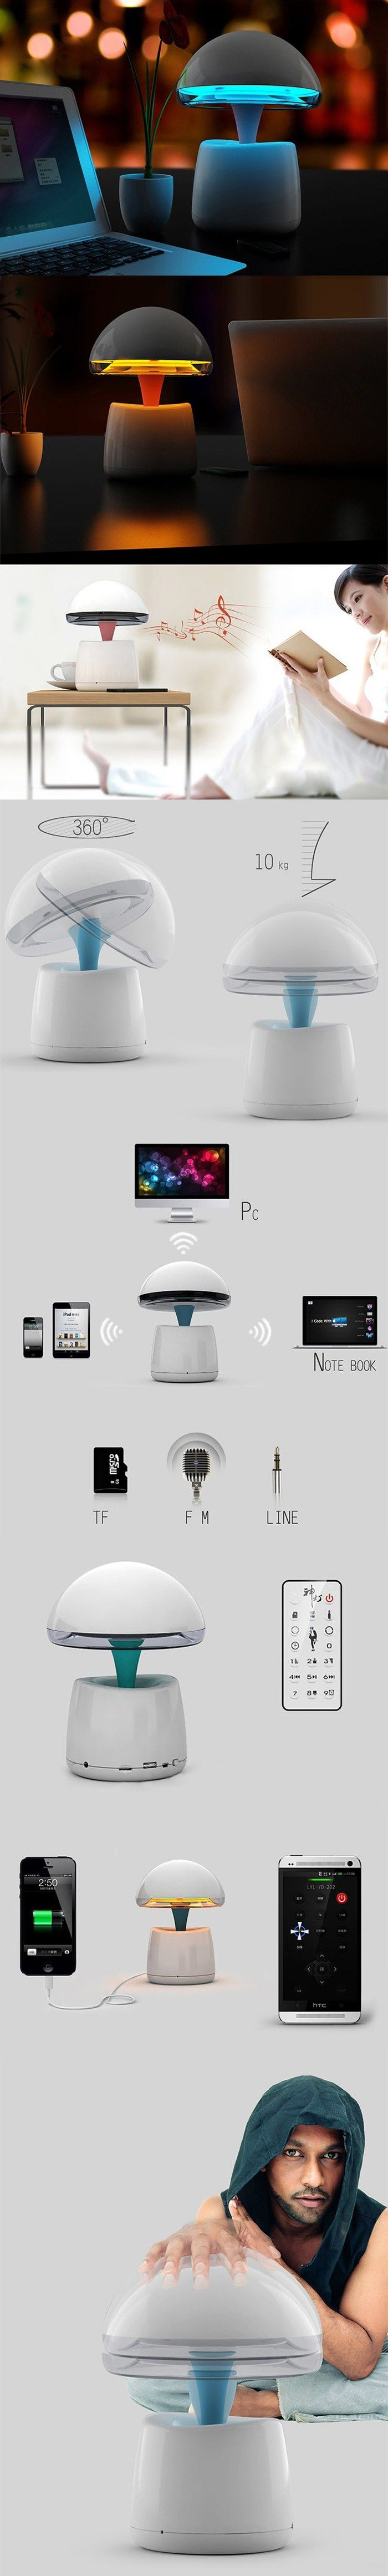 A LA Magic Lamp 3 in 1 High Performance Night Light Alarm Clock Wireless Bluetooth Speaker Built - in Lithium Battery with Remote Control for Mobile Phone Computer - BLUE